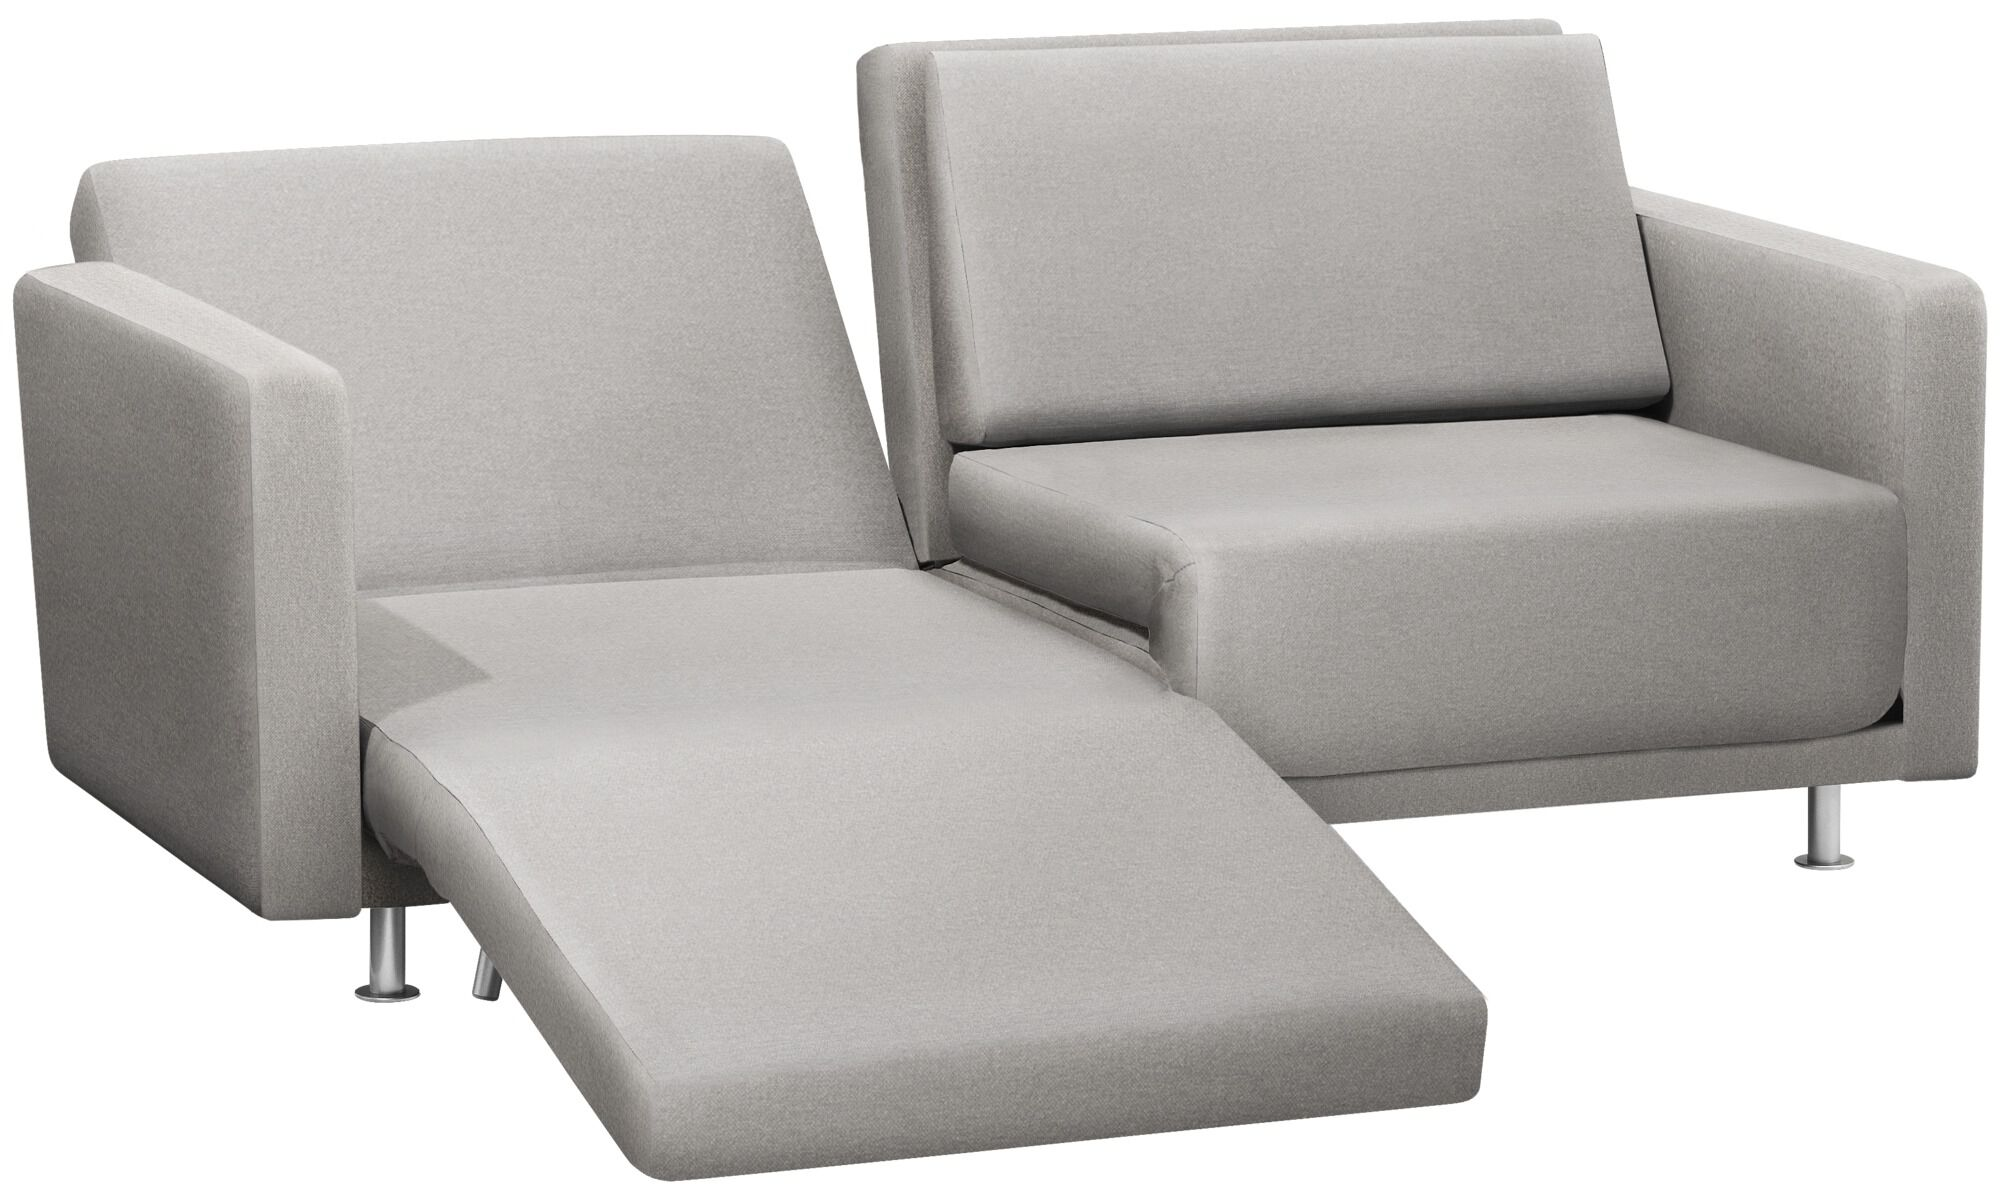 Sofa Beds   Melo 2 Sofa With Reclining And Sleeping Function   Gray   Fabric